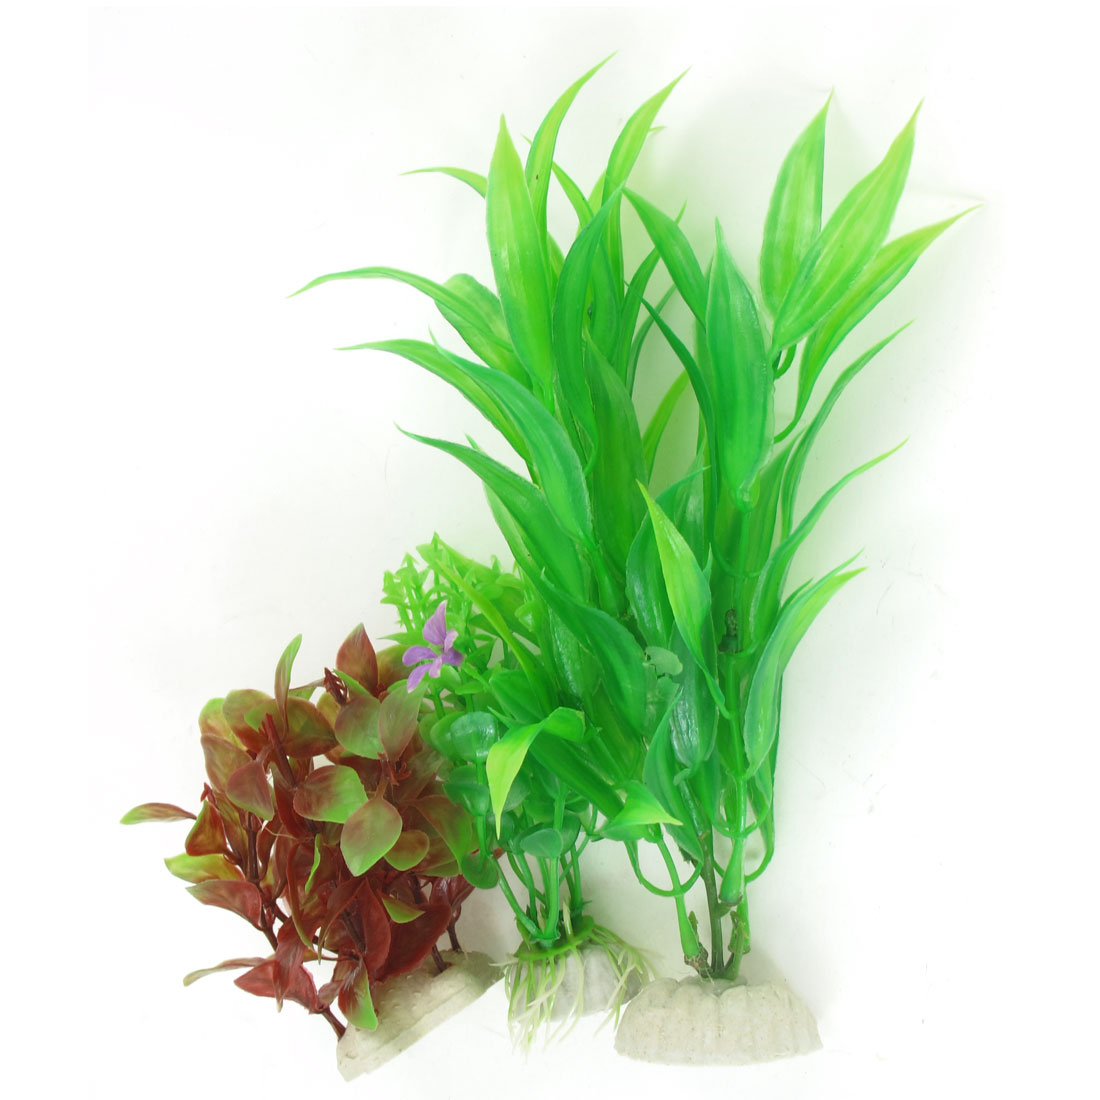 3 Pcs Green Burgundy Emulational Fish Tank Aquarium Grasses Decoration